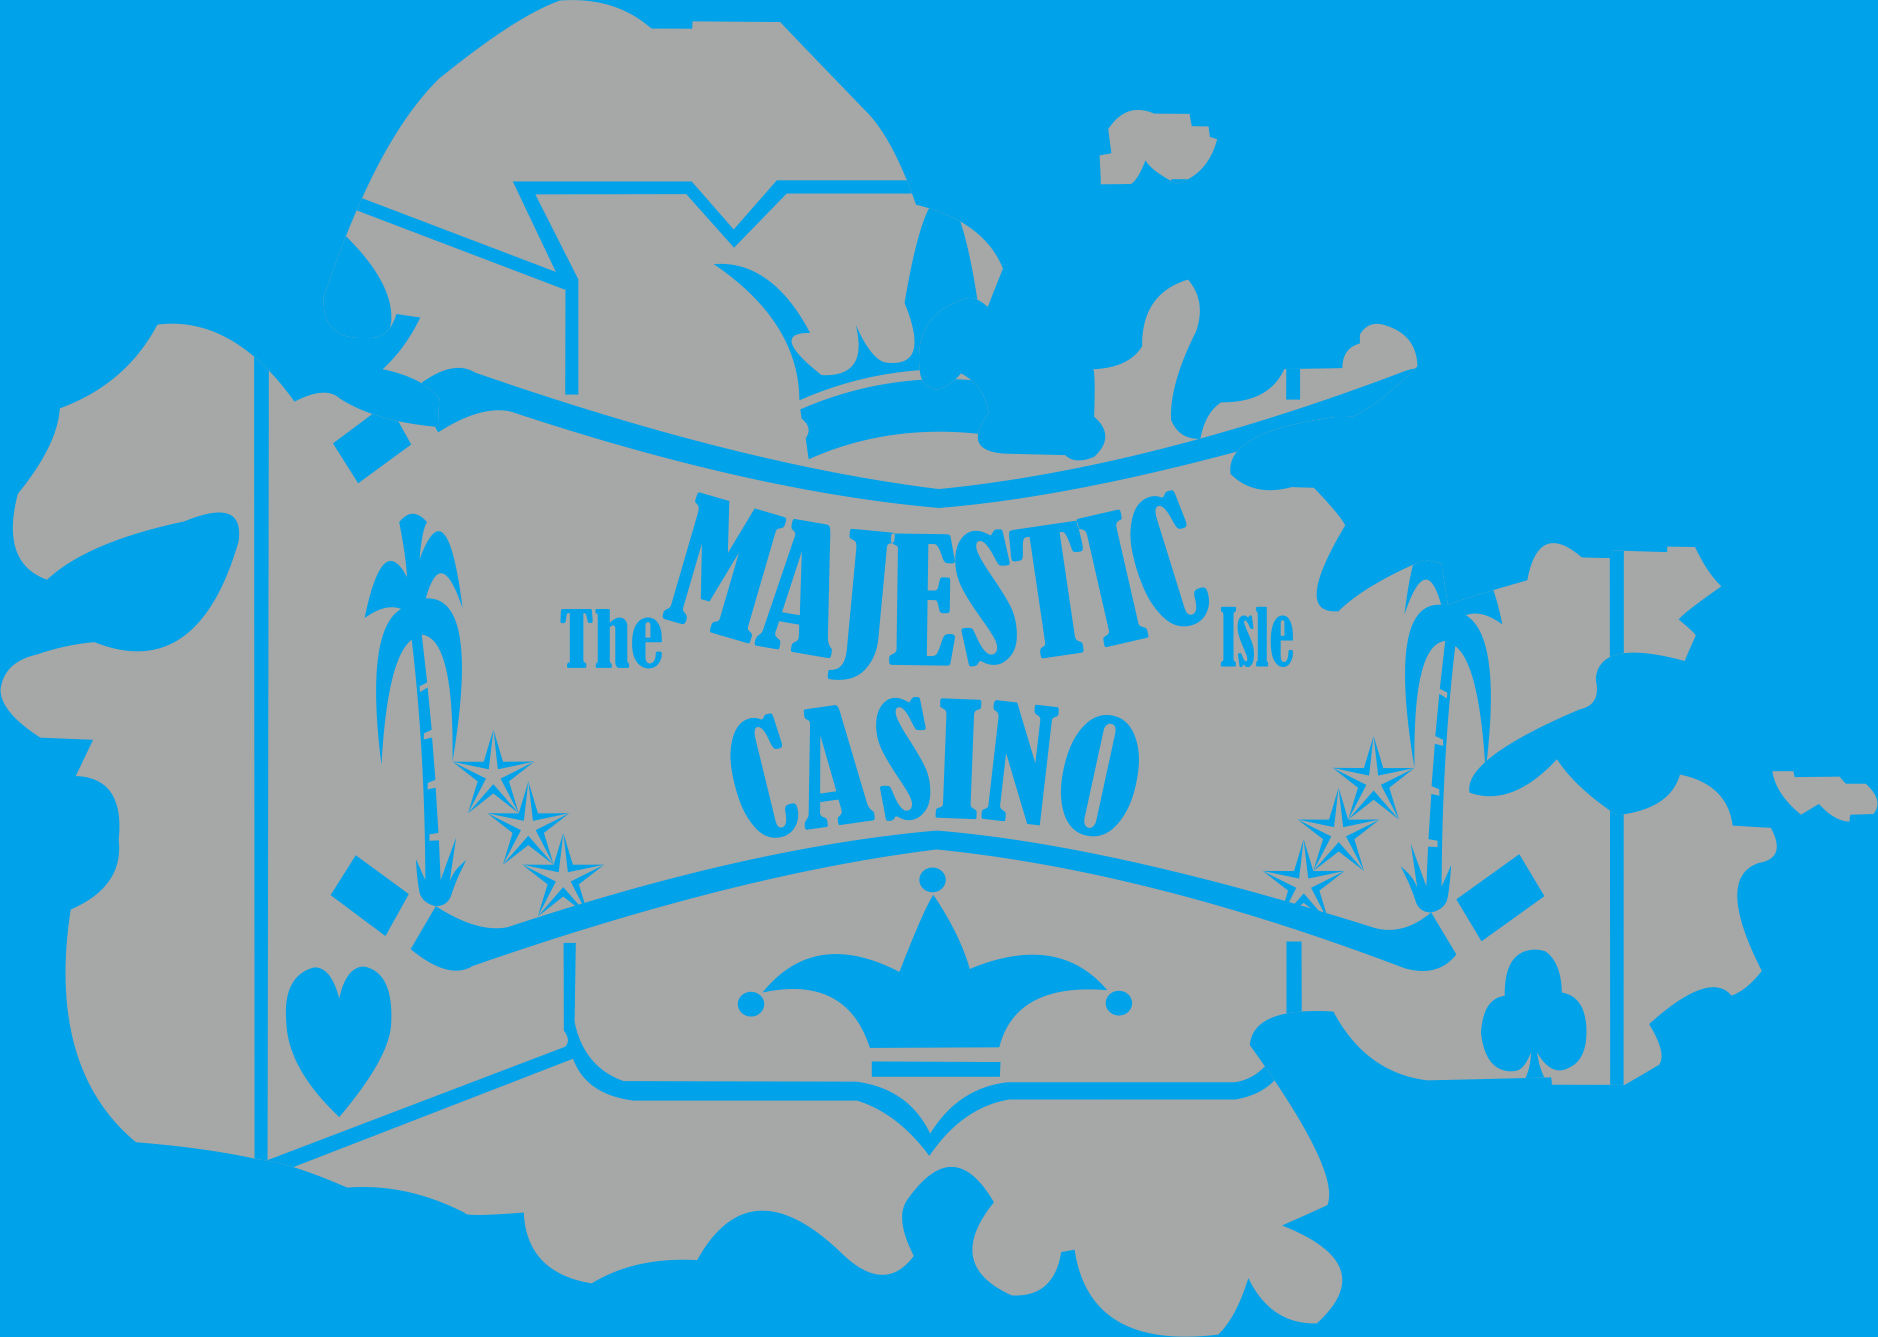 Logo Design by Teguh Hanuraga - Entry No. 26 in the Logo Design Contest New Logo Design for The Majestic Isle Casino.